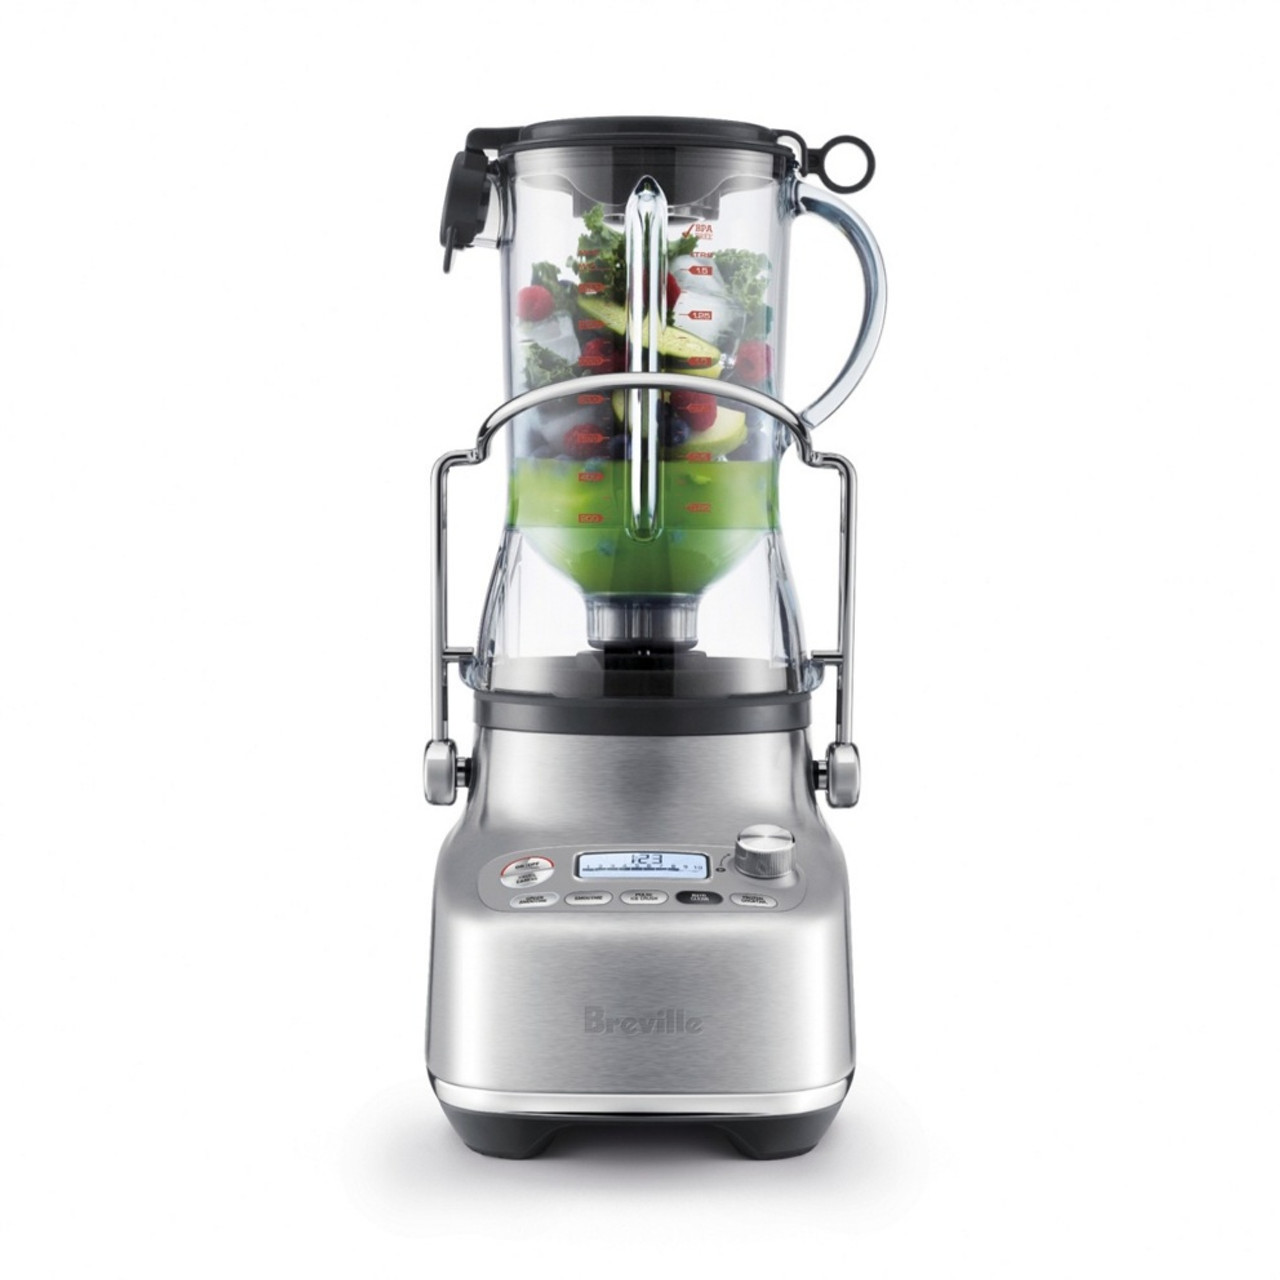 Breville BJB815BSS the 3X Bluicer™ Pro Blender, Juicer and Bluicer - RRP $649.95